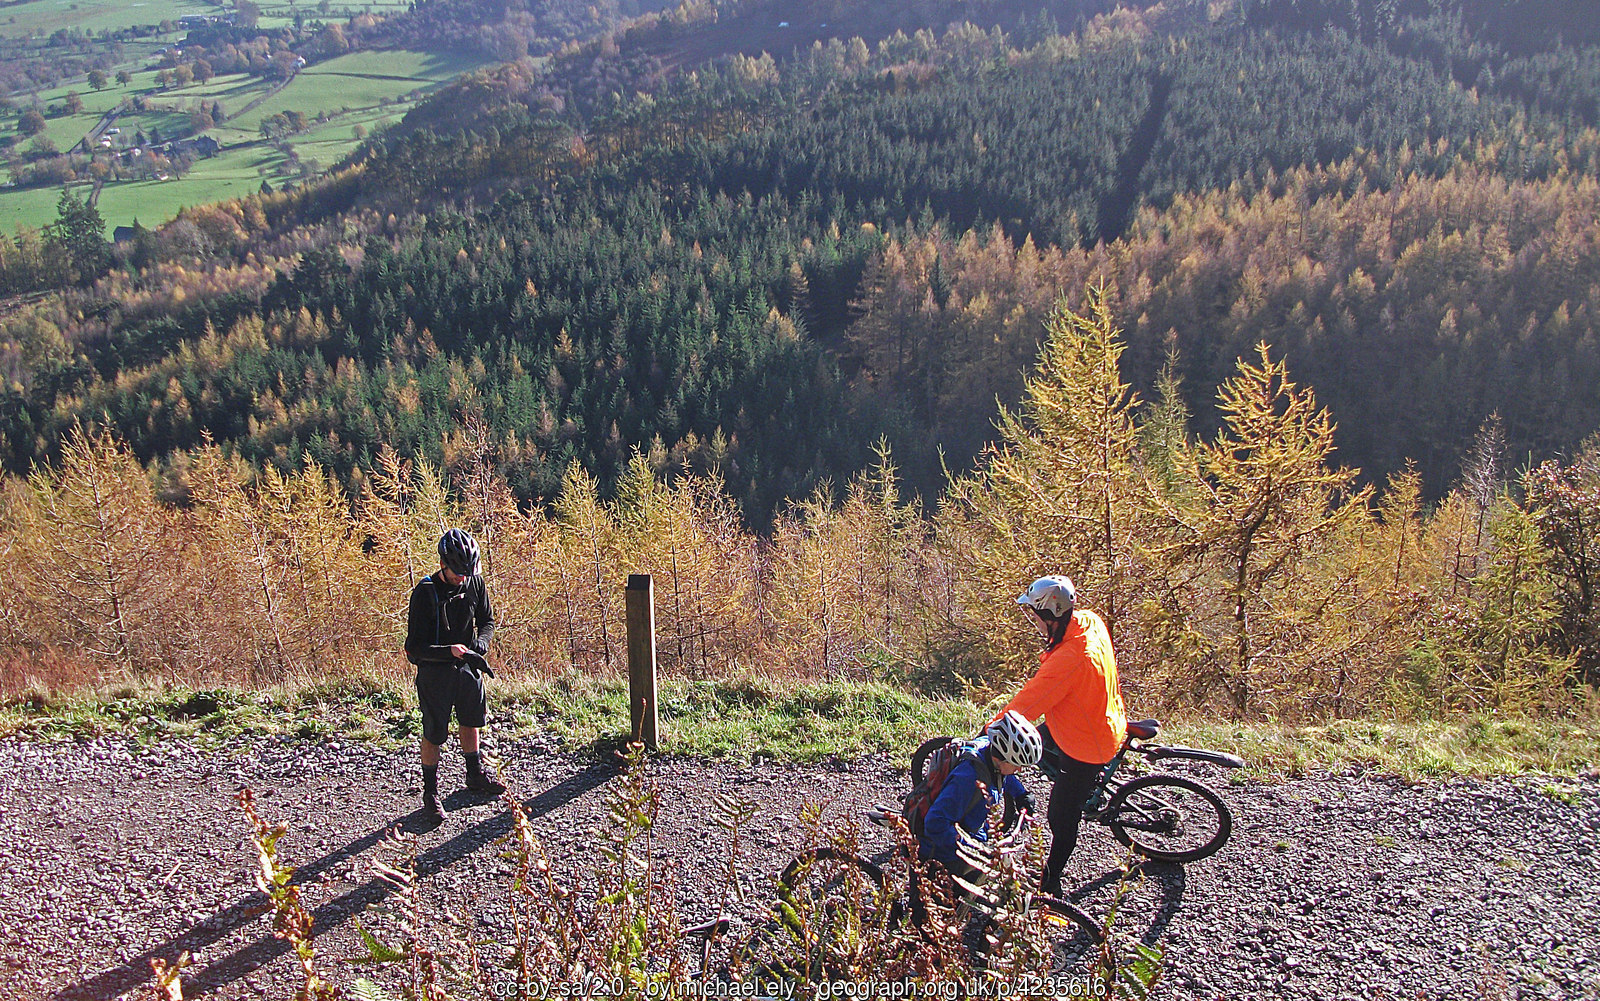 Whinlatter Mountain Bike Centre